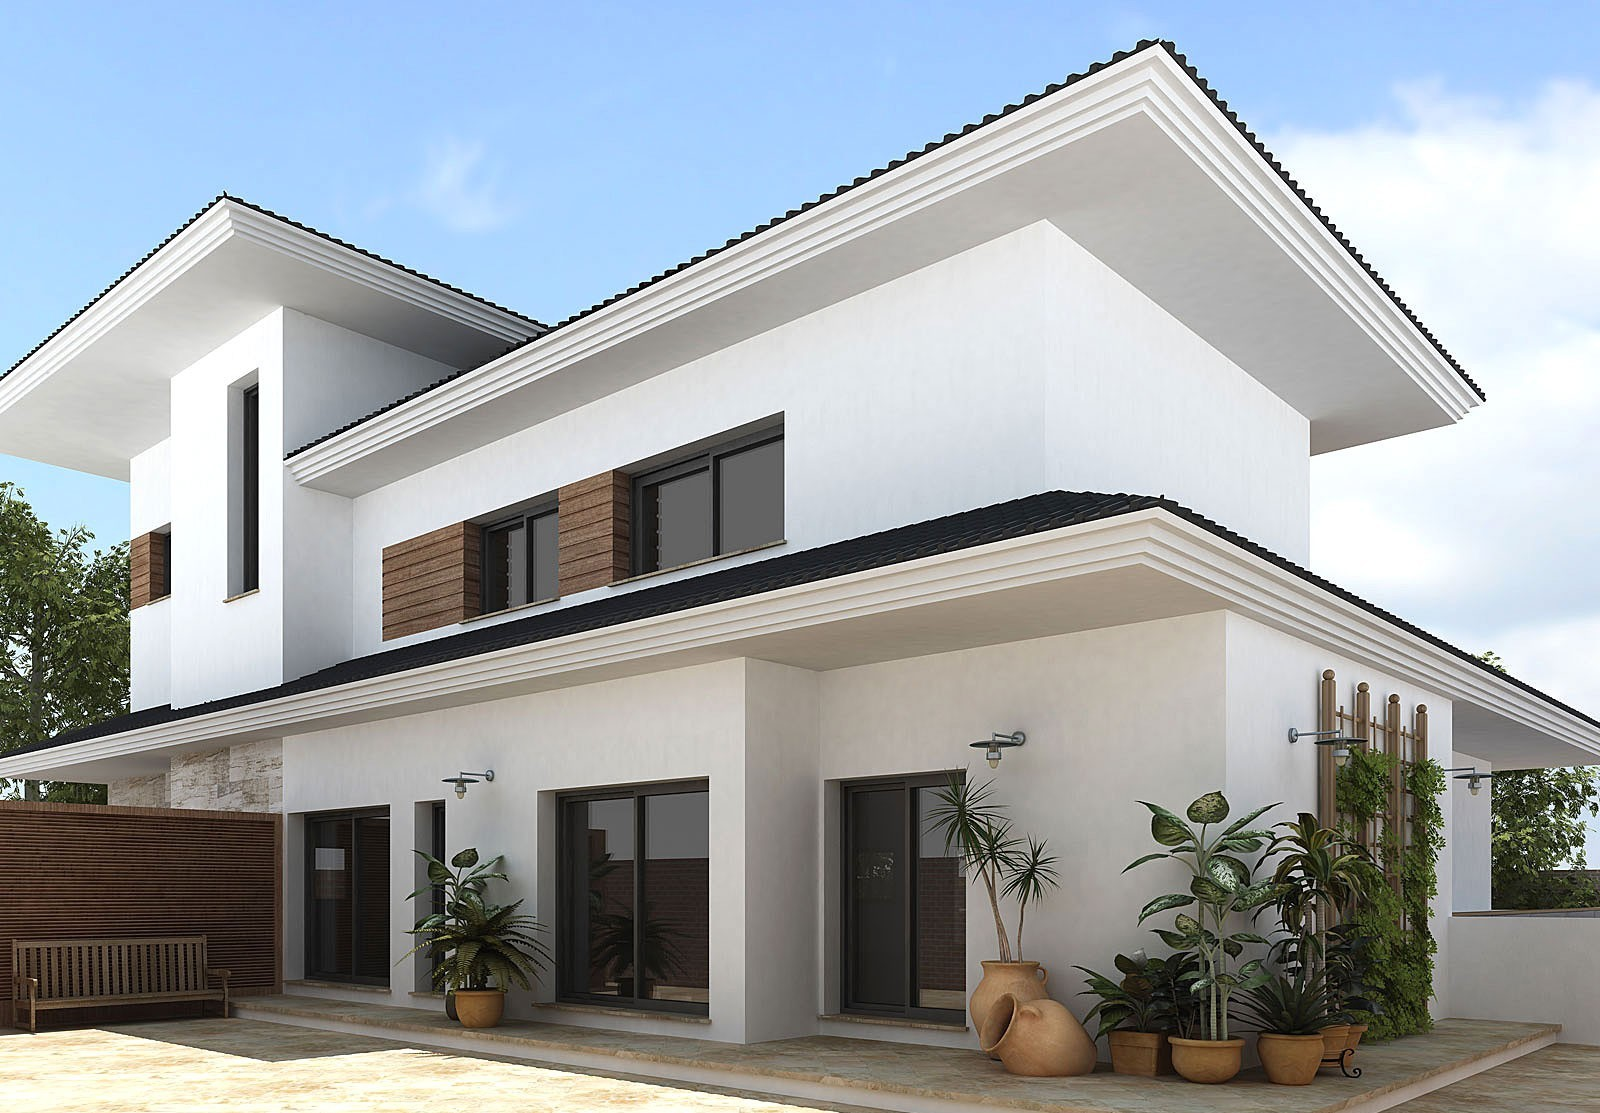 Exterior House Designs For An Ultimate Home – CareHomeDecor